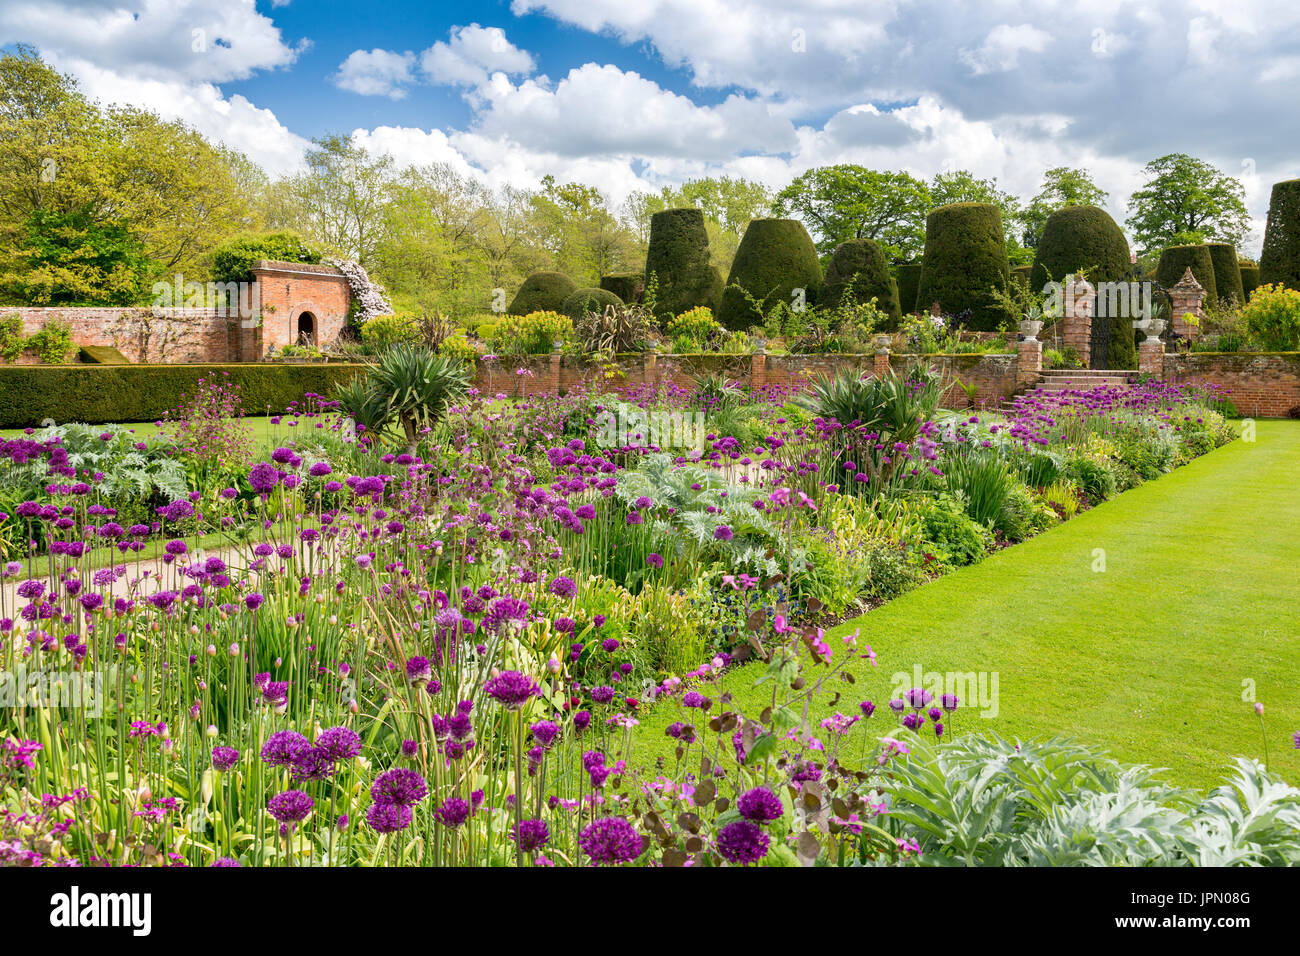 Colourful allium flowers in the garden borders at Packwood House - a preserved Tudor manor house in Warwickshire, England, UK - Stock Image